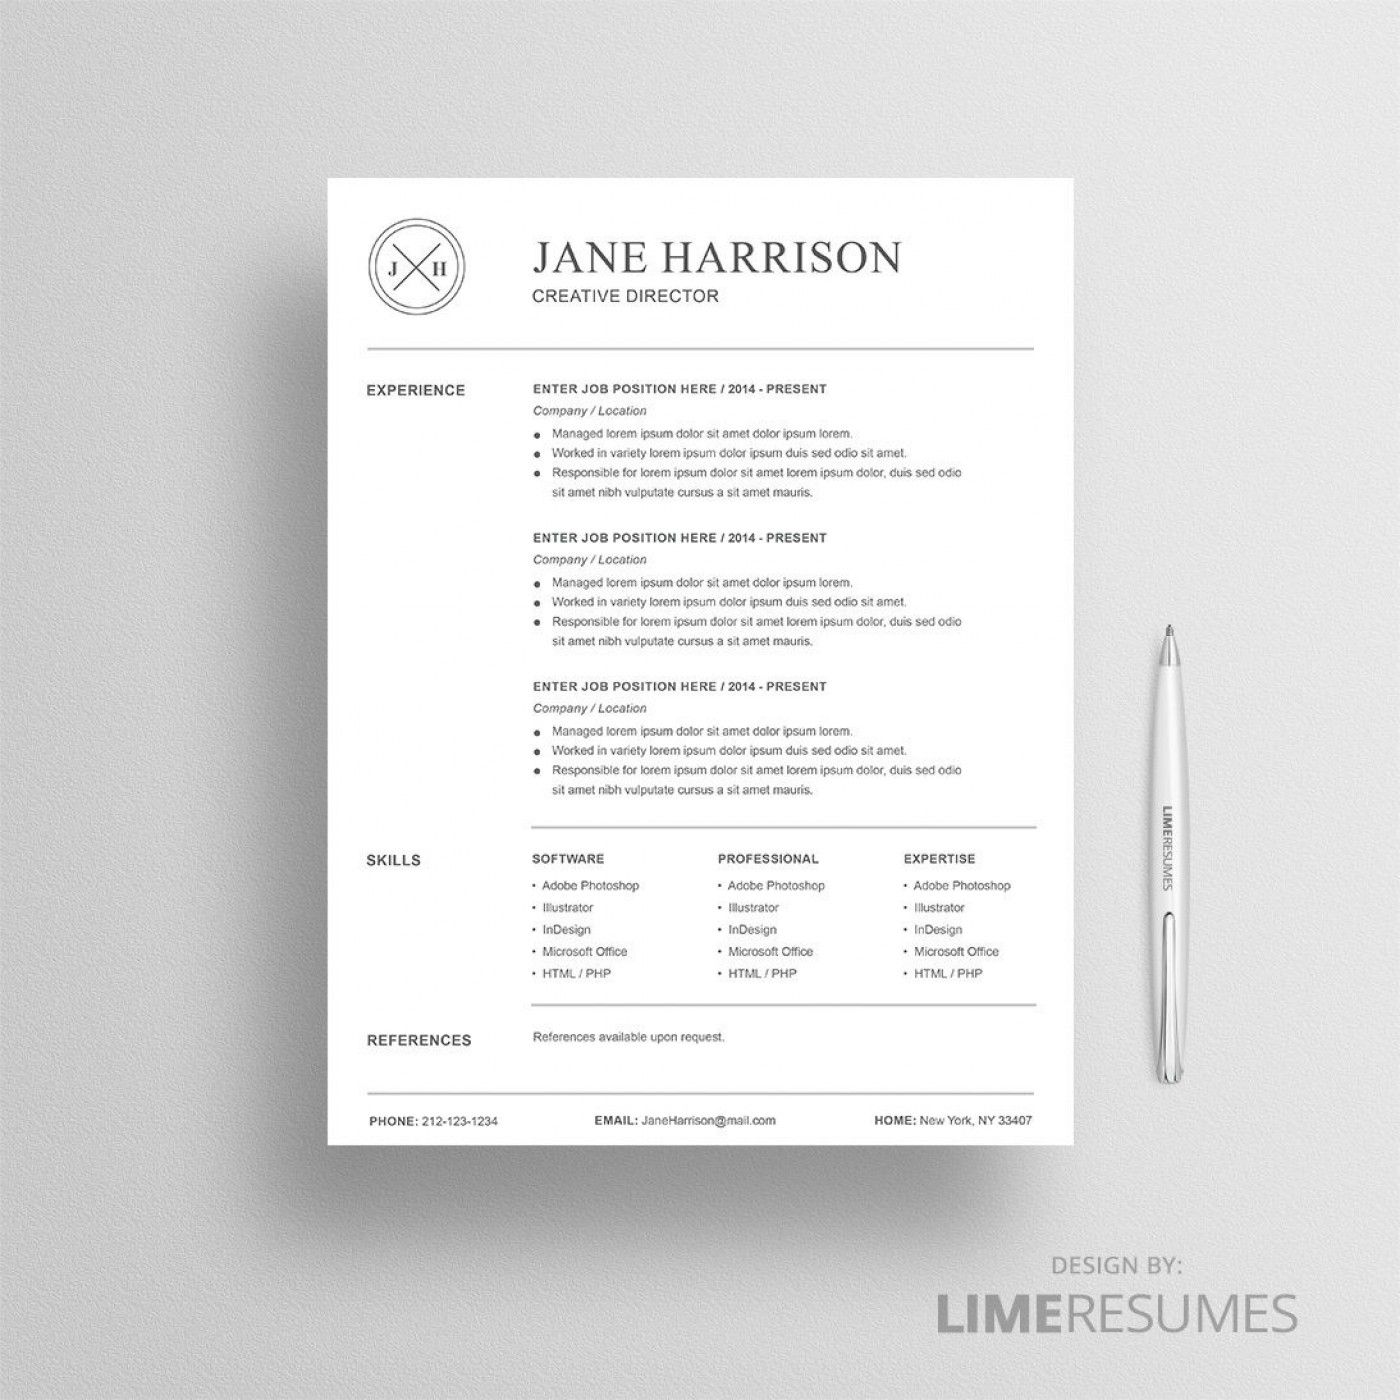 008 Beautiful Resume Reference List Template Microsoft Word High Resolution 1400